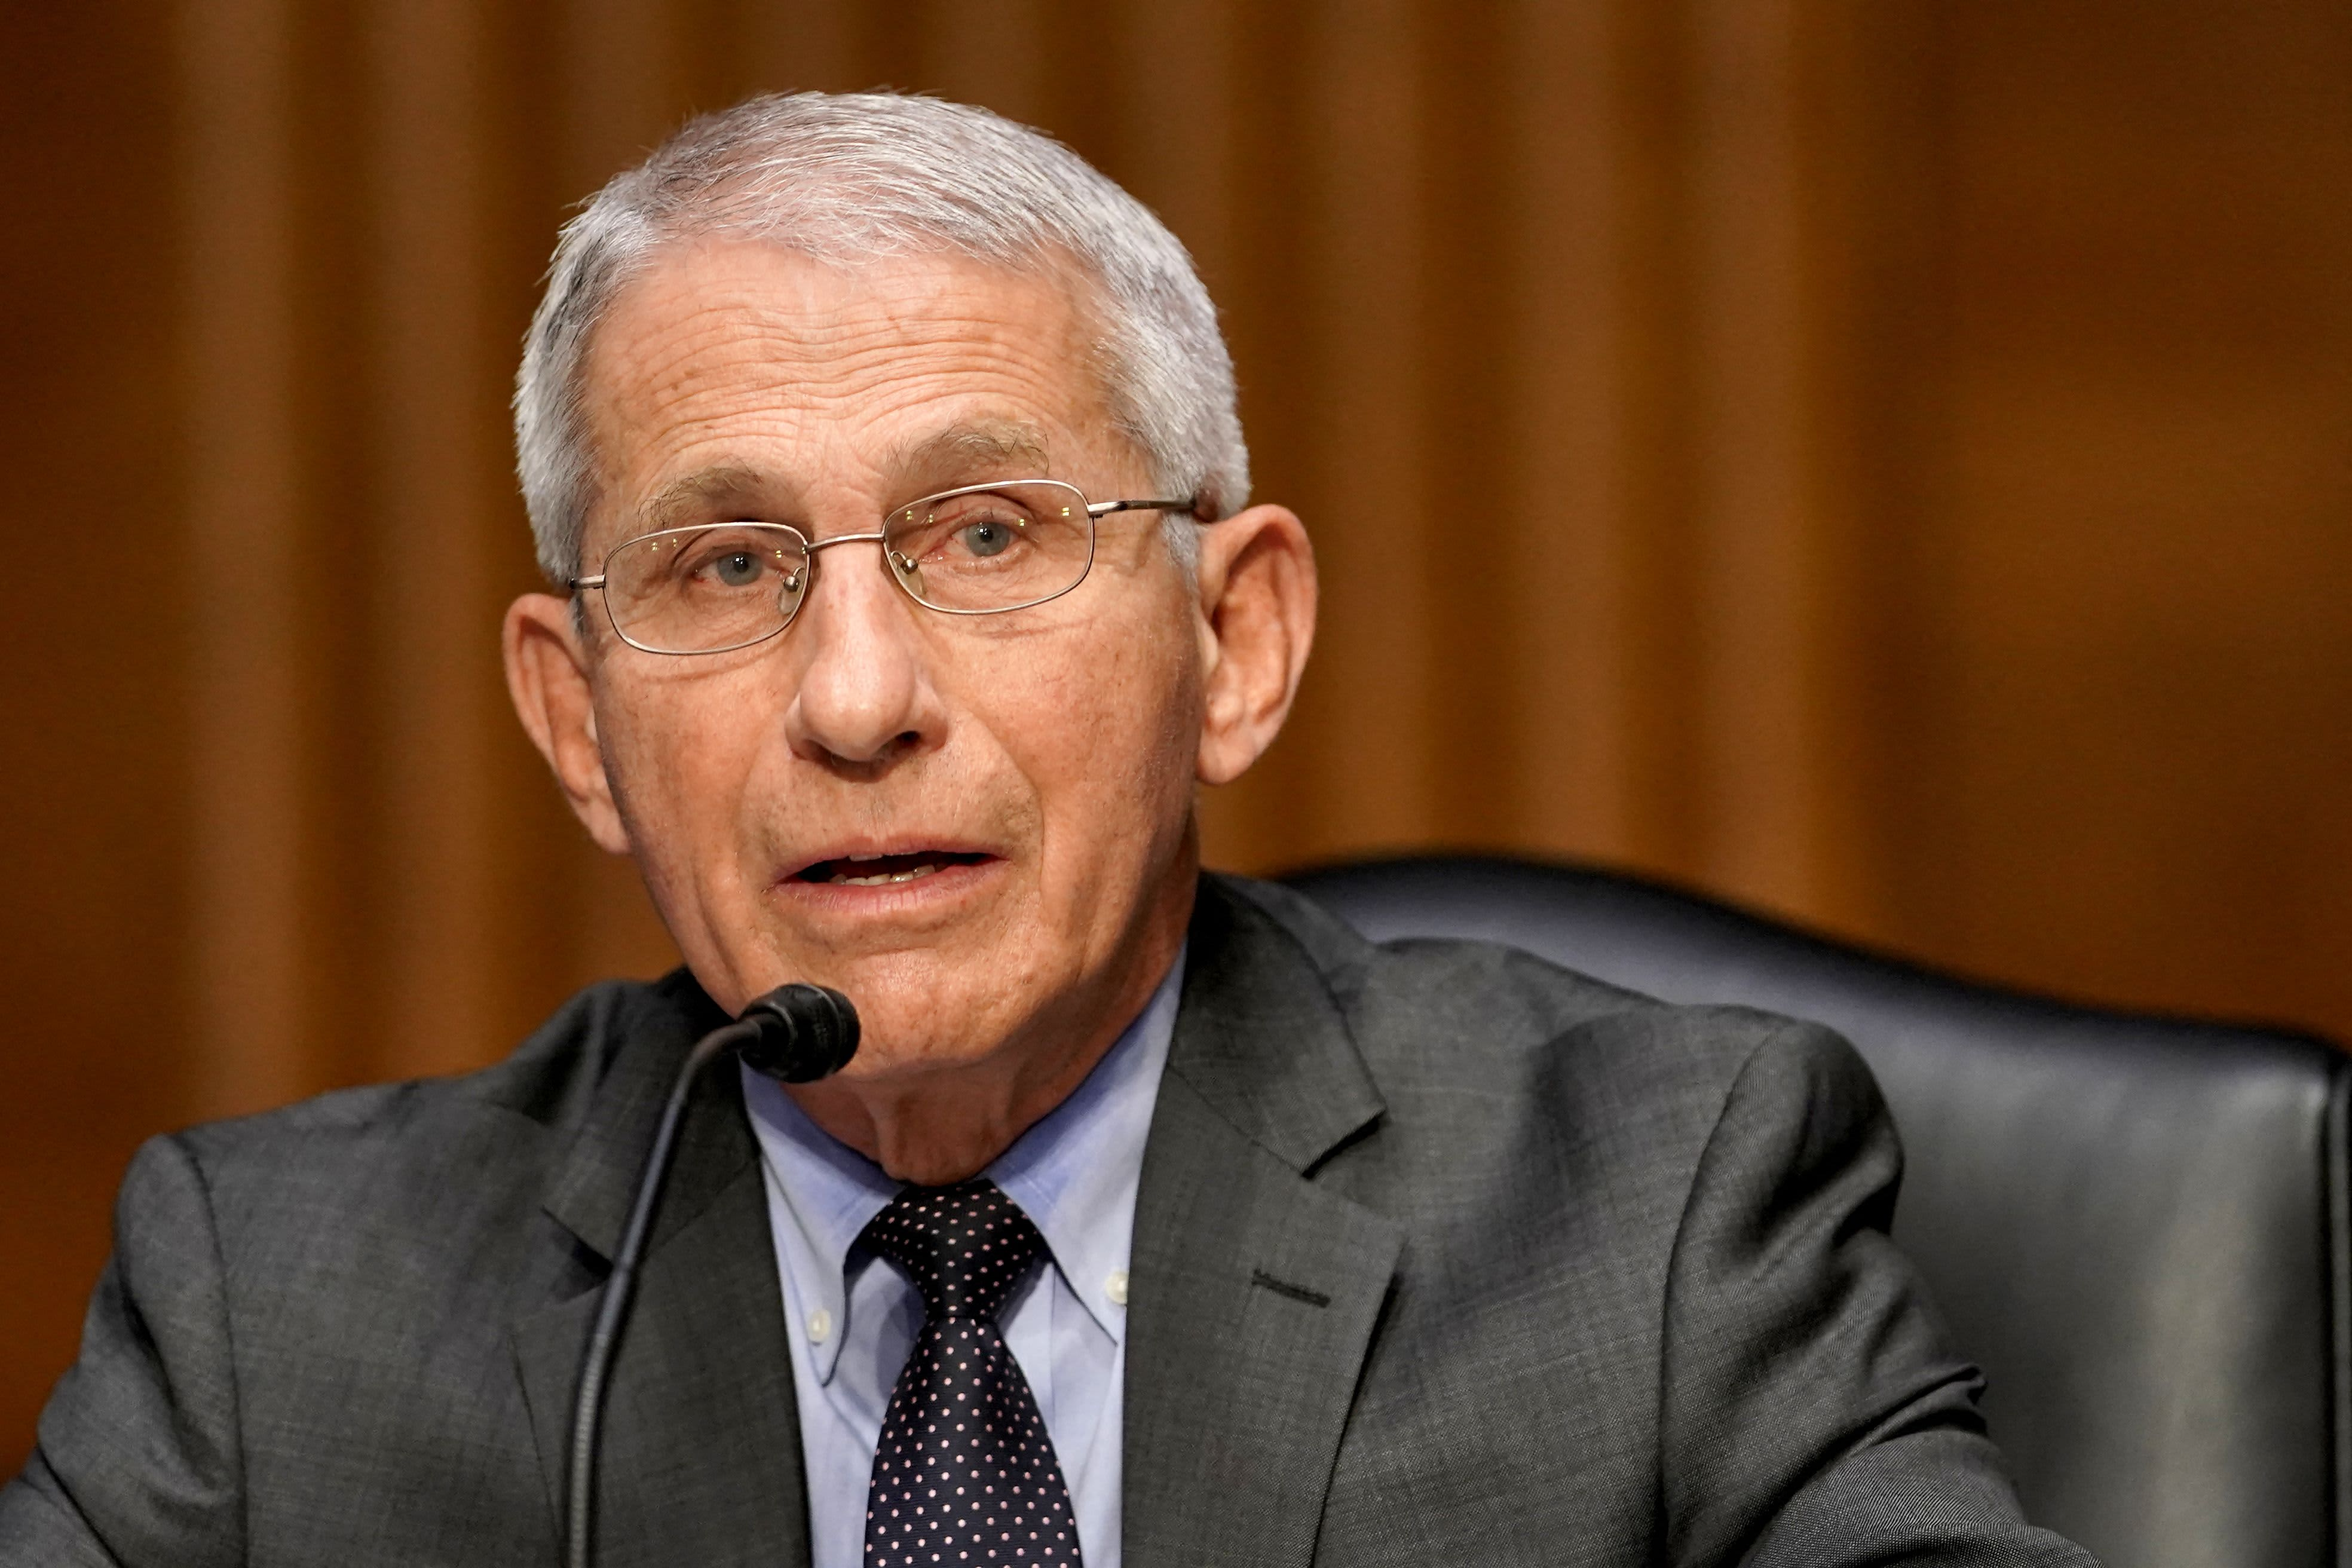 Fauci says delta accounts for 20% of new cases and will be dominant Covid variant in U.S. in weeks